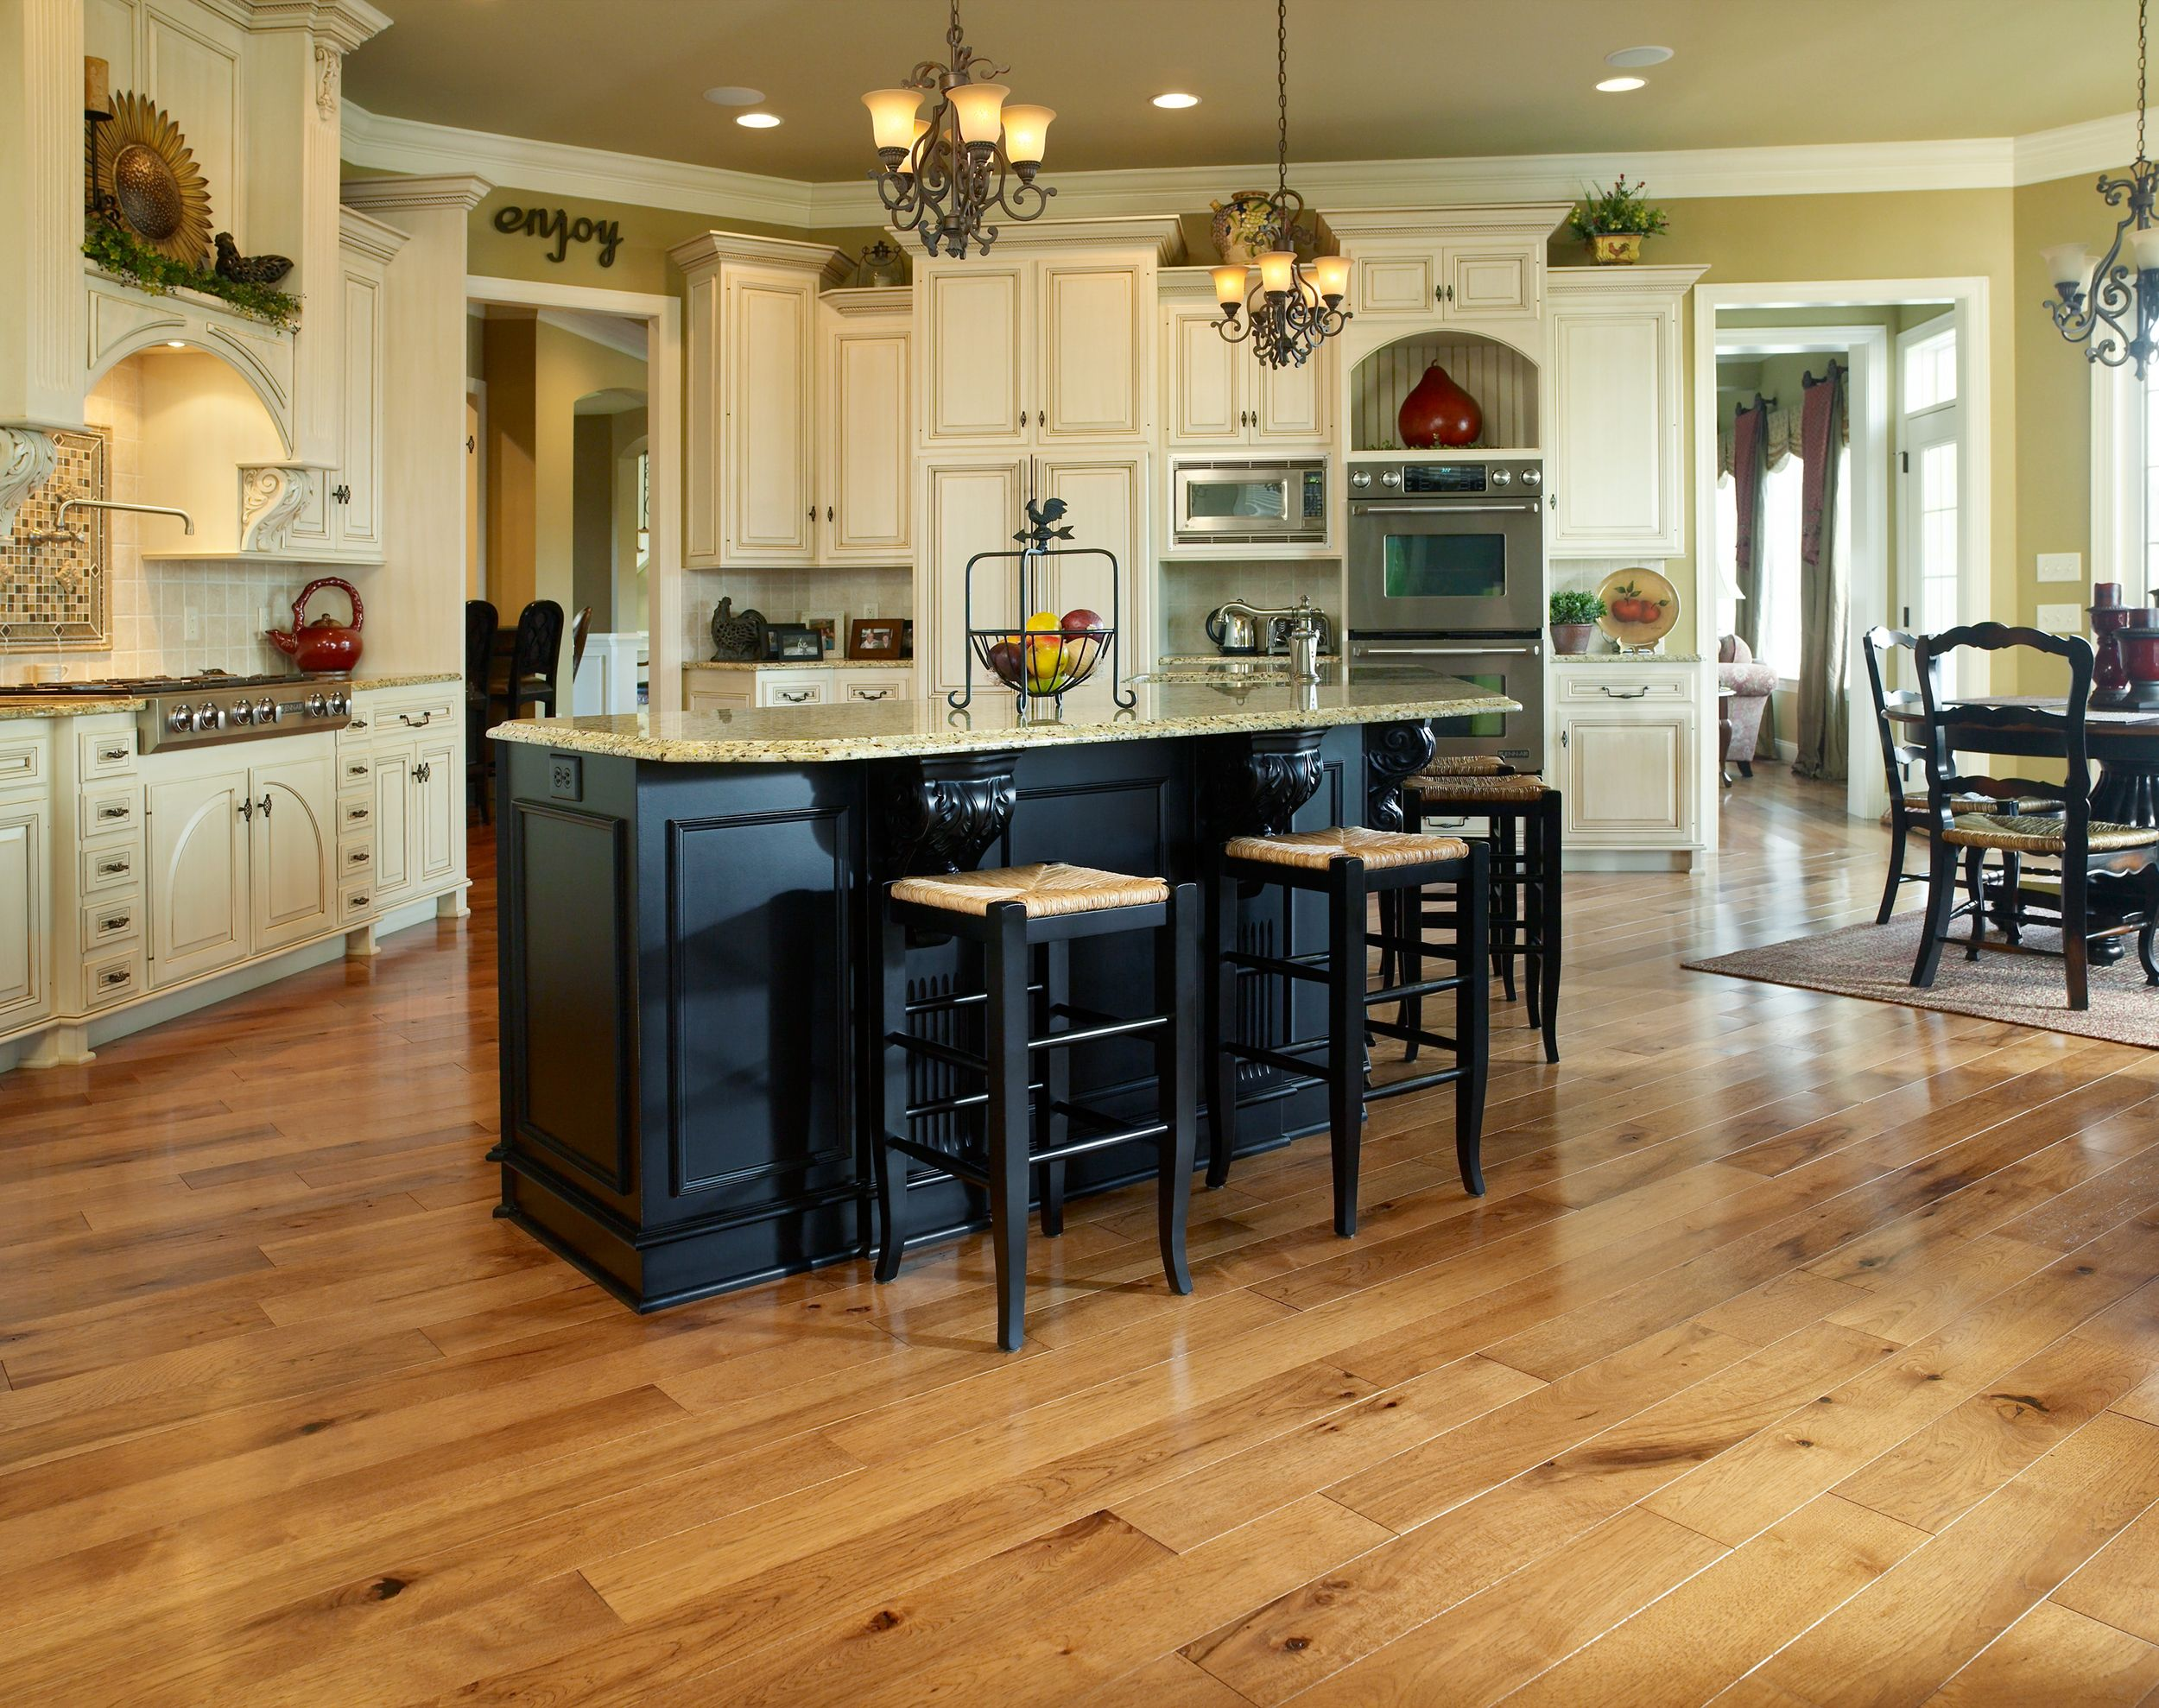 Wood In Kitchen Floors Plan Hickory Hardwood Flooring Bellawood And Hickory Hardwood